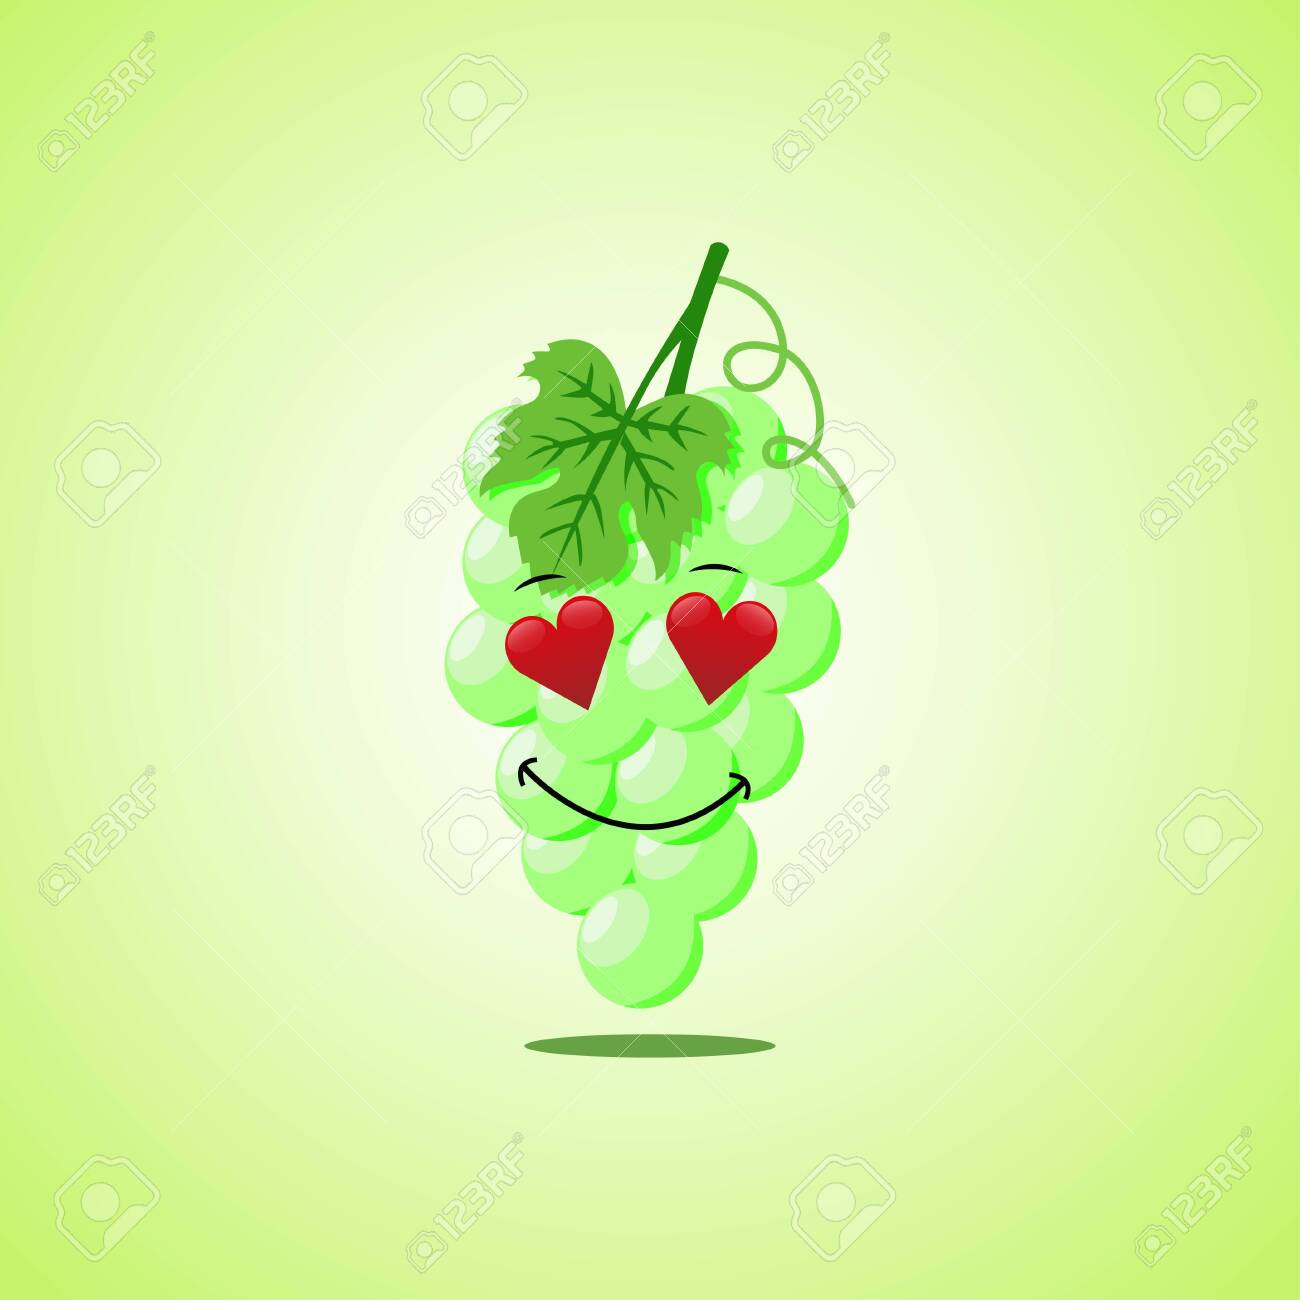 Amorous cartoon white grapes symbol. Cute smiling white grapes icon isolated on green background - 146957675